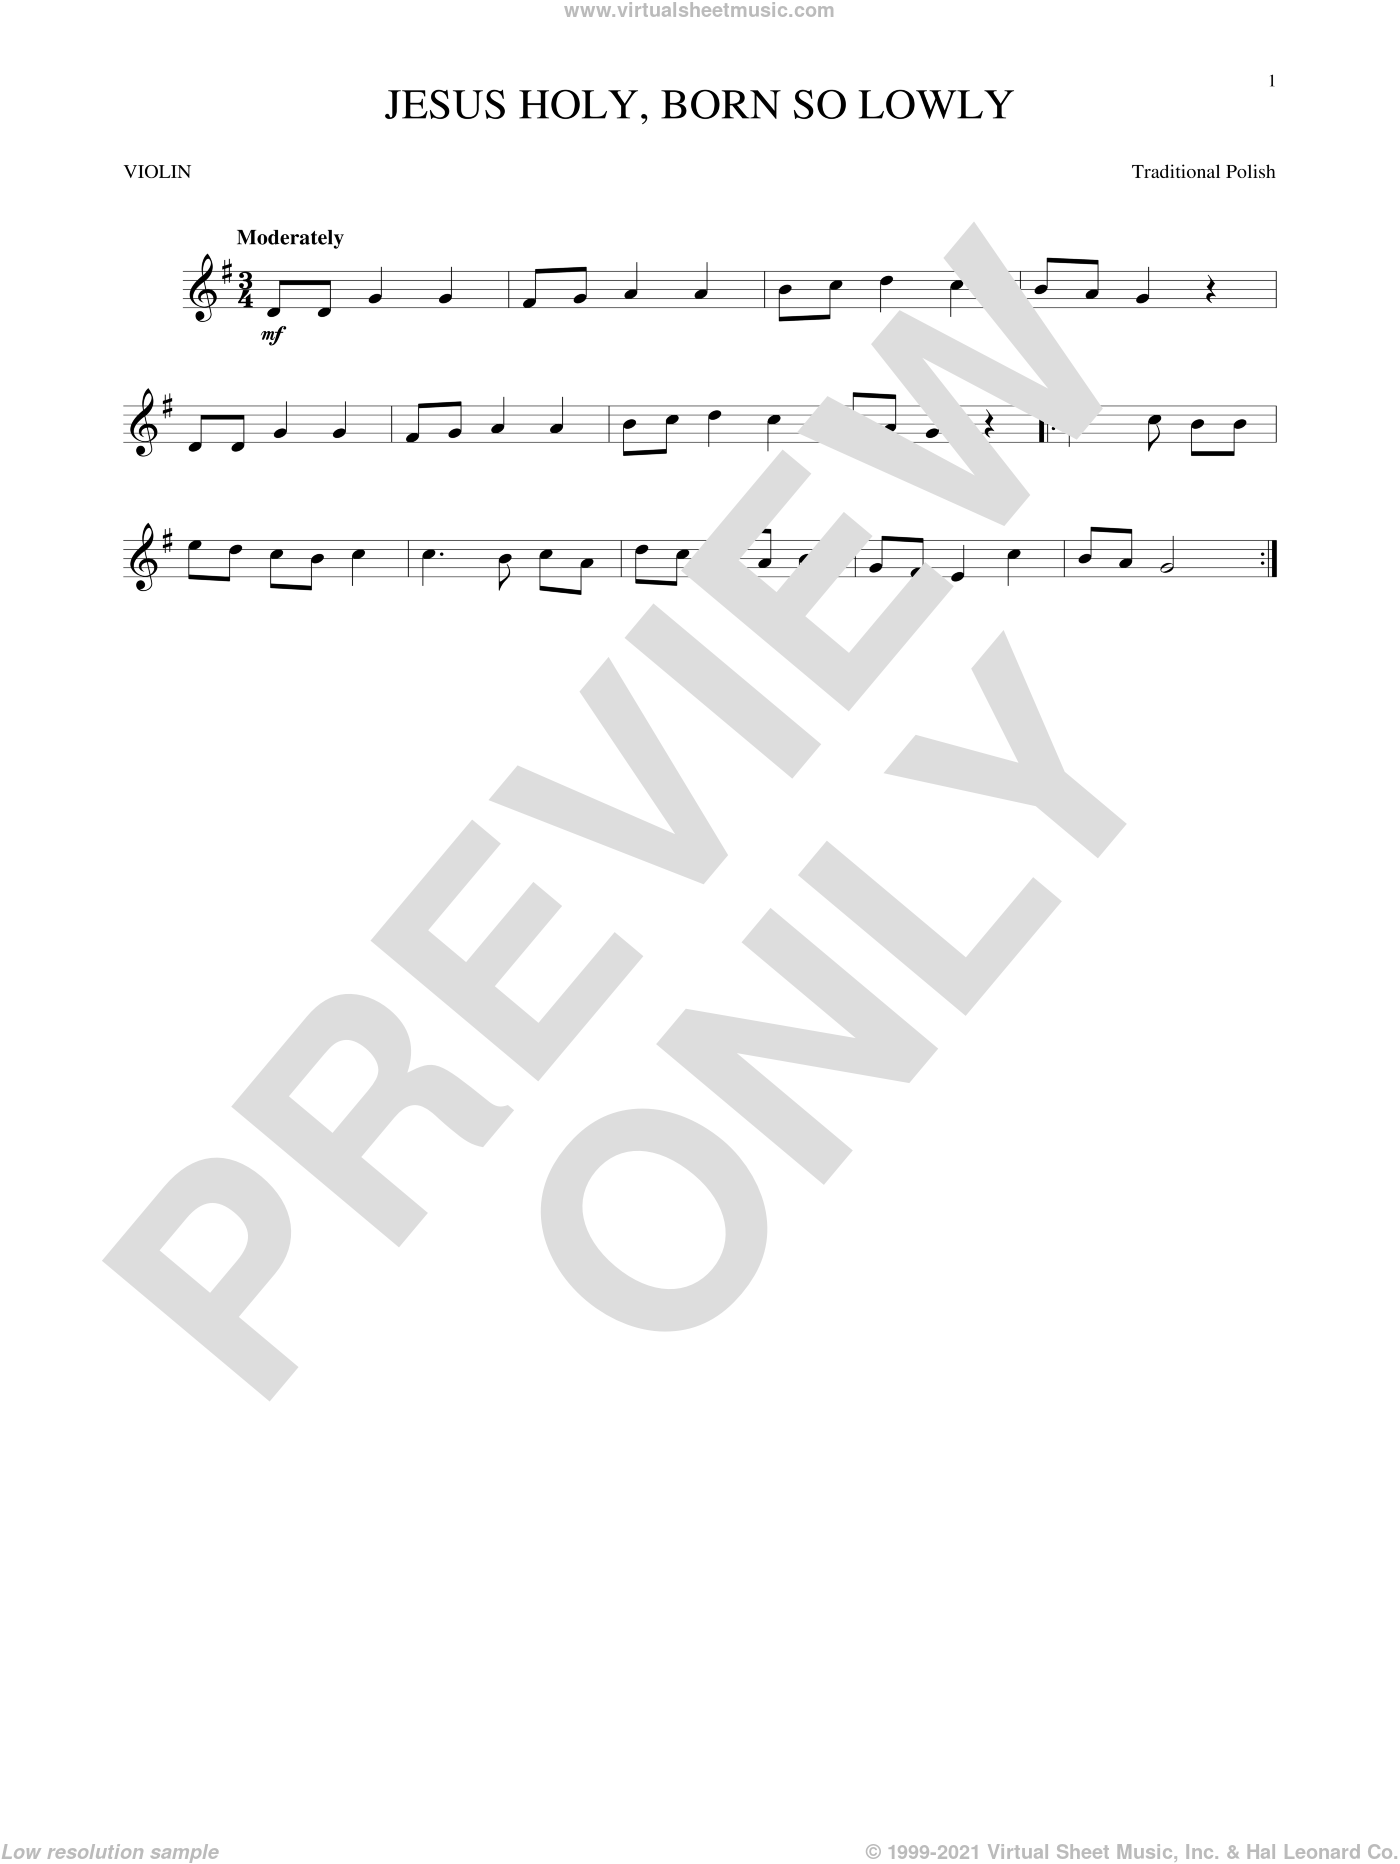 Jesus Holy, Born So Lowly sheet music for violin solo, intermediate skill level